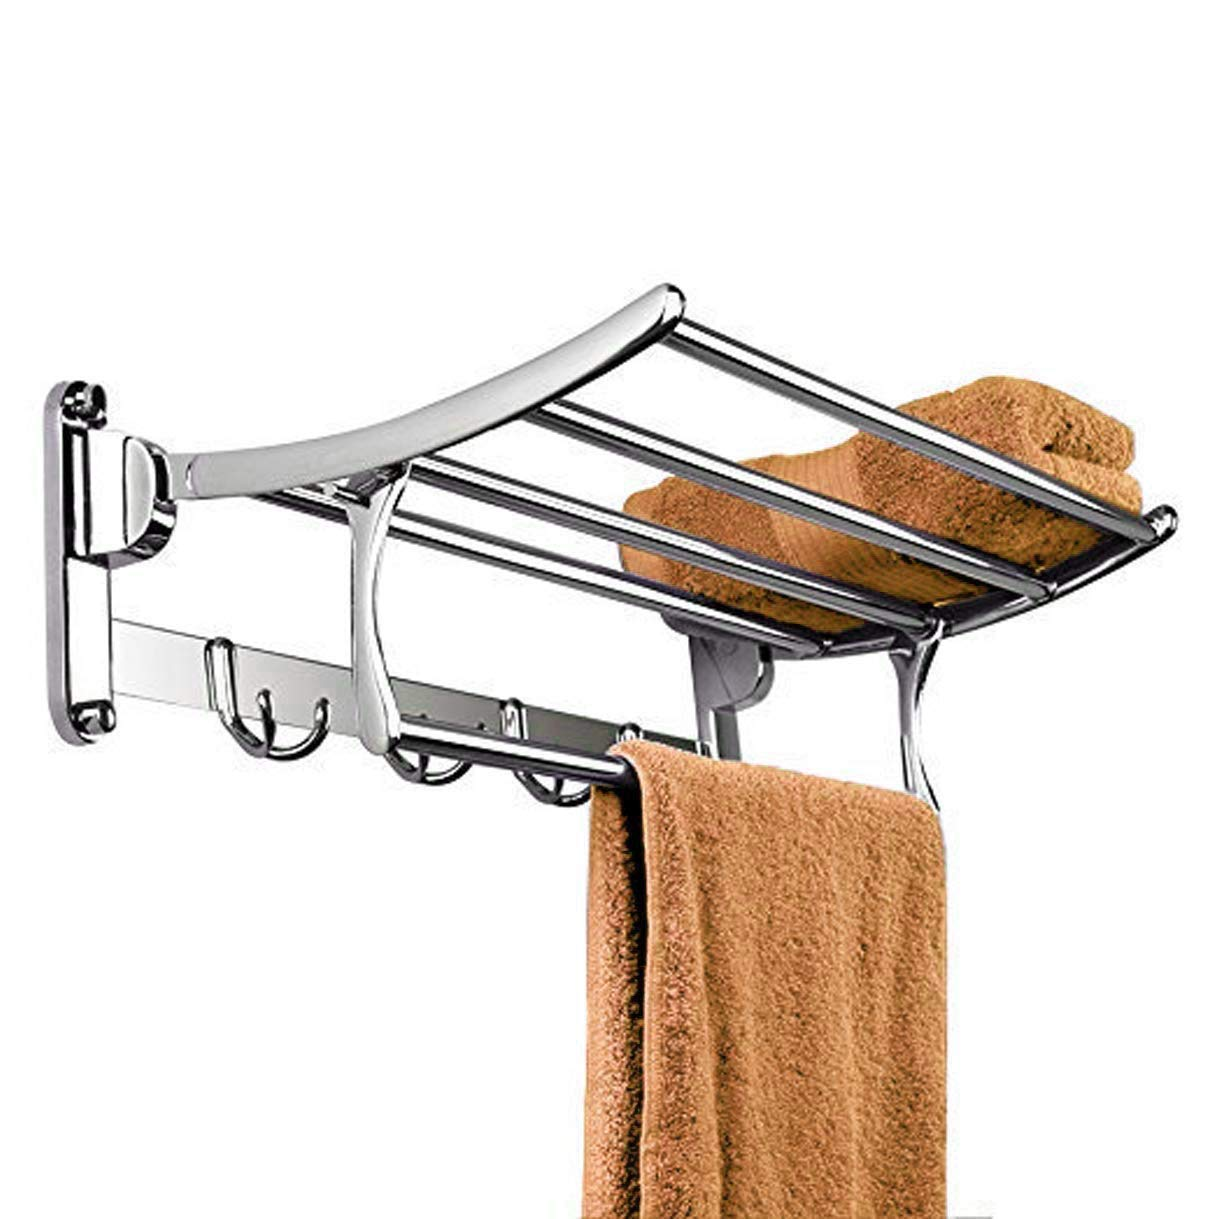 Classic High Grade Stainless Steel Folding Towel Rack (18 Inches)